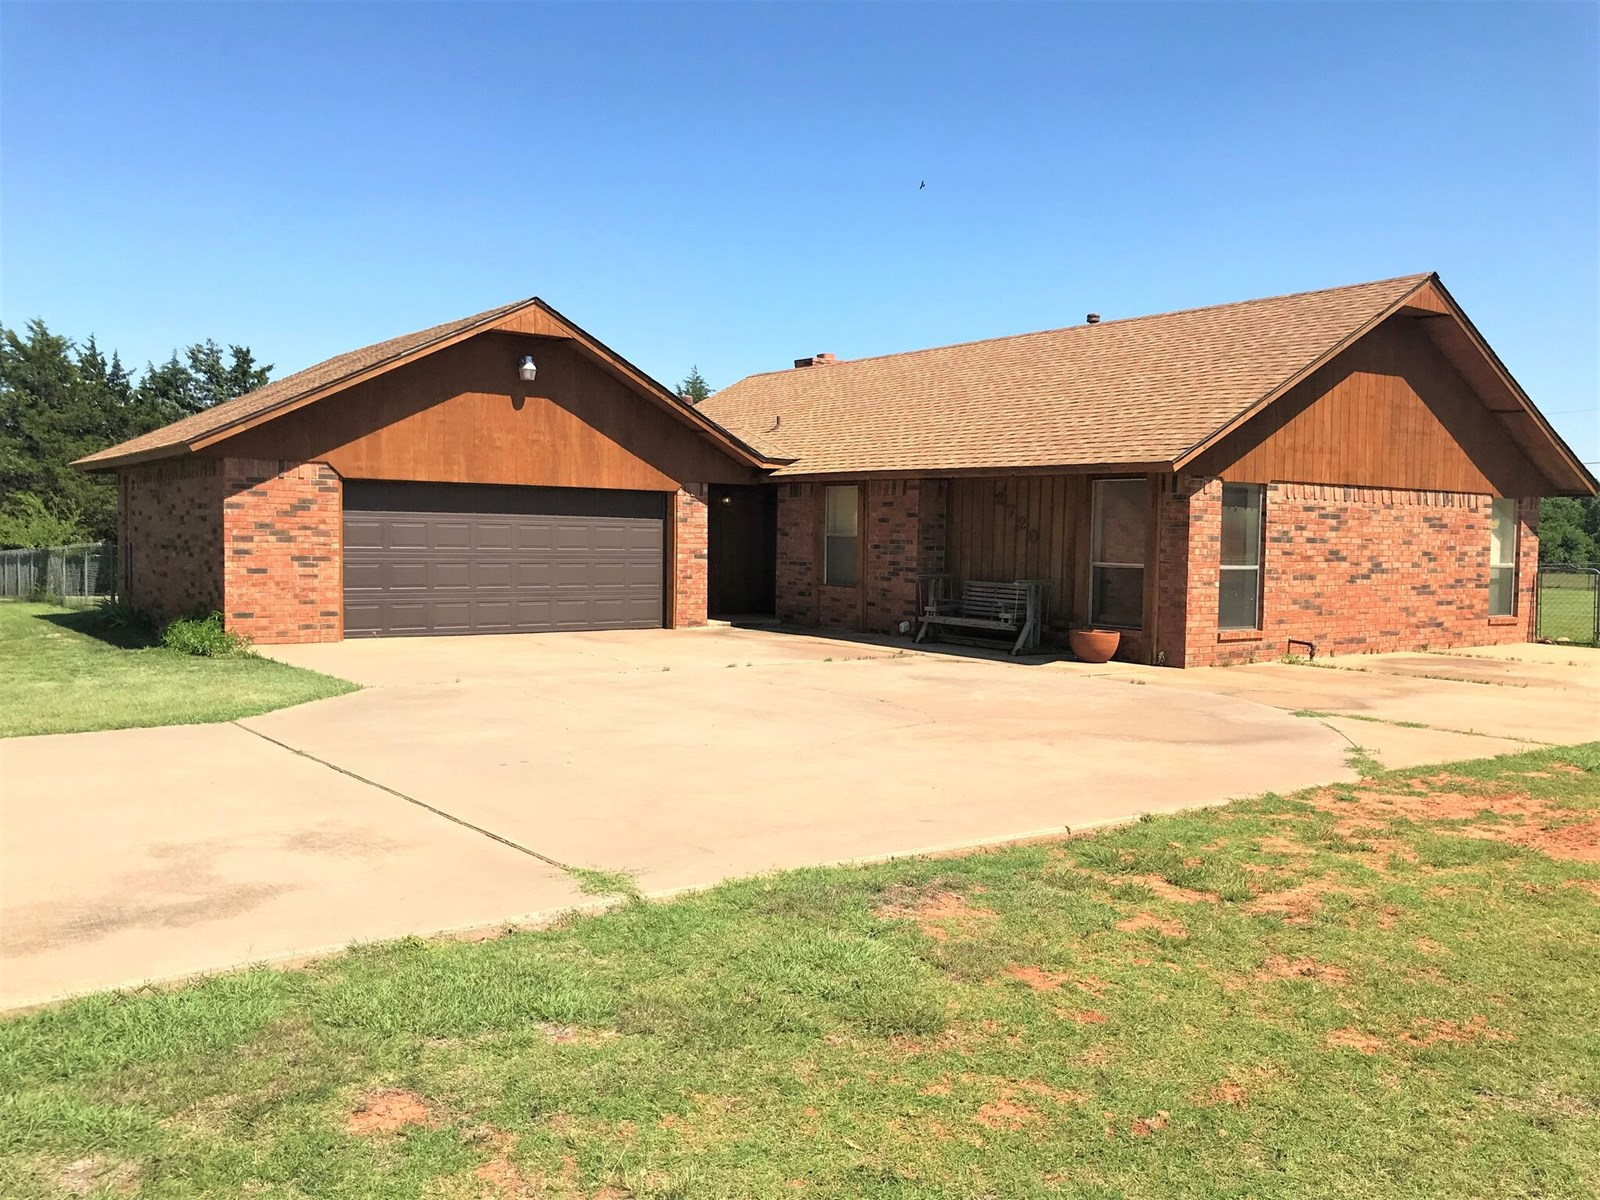 Clinton, OK House for Sale, 73601 - Country Home